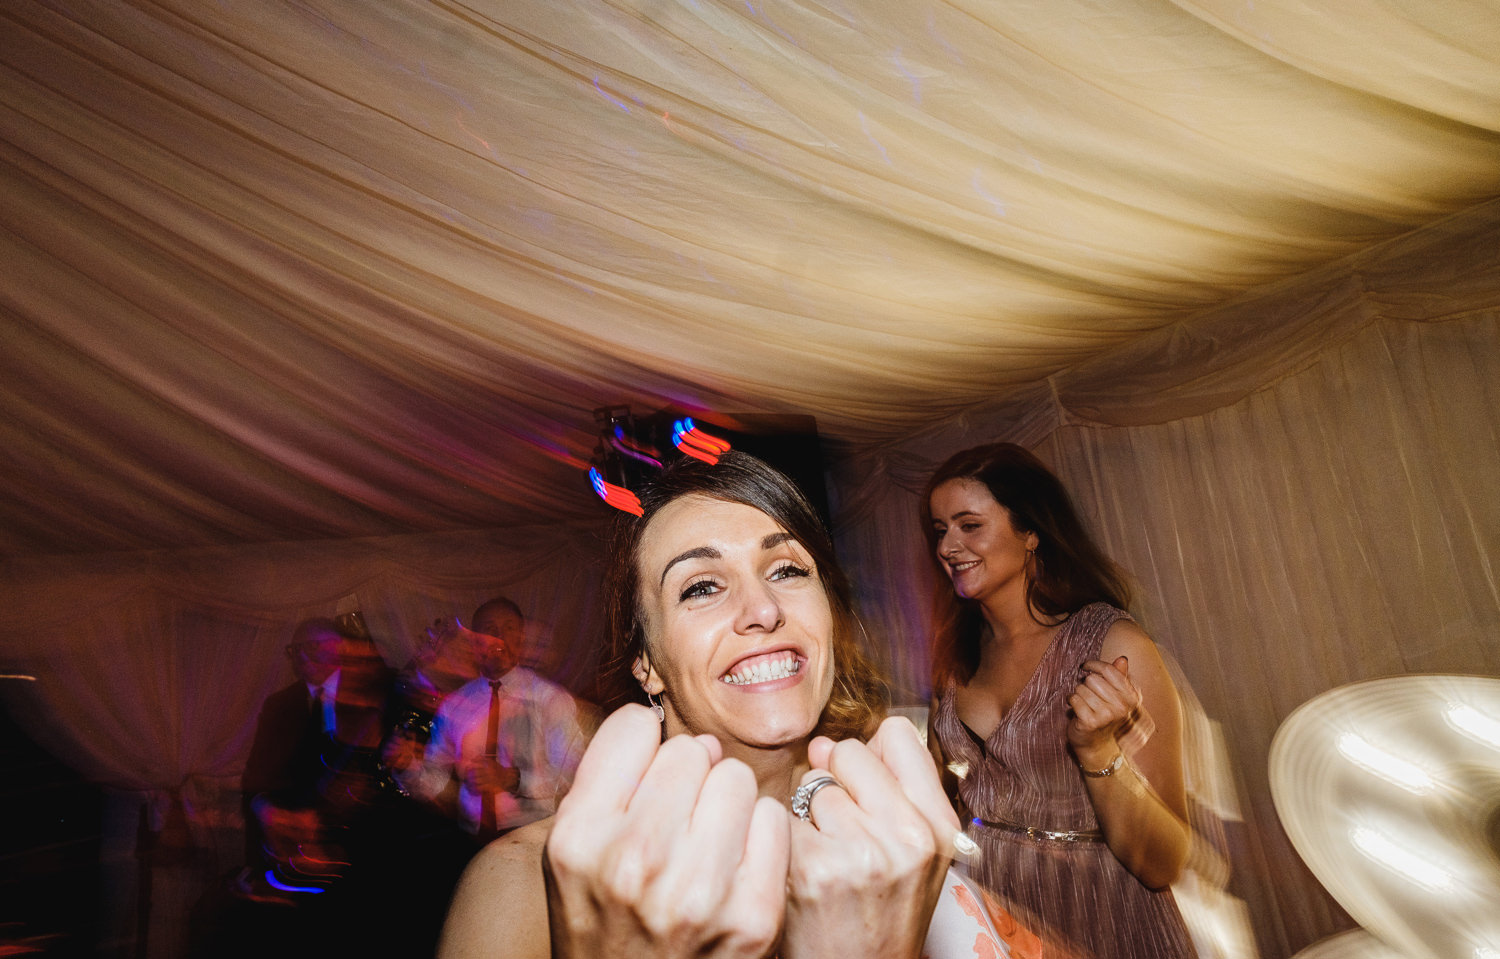 wedding dances candid unposed photography festival style marquee